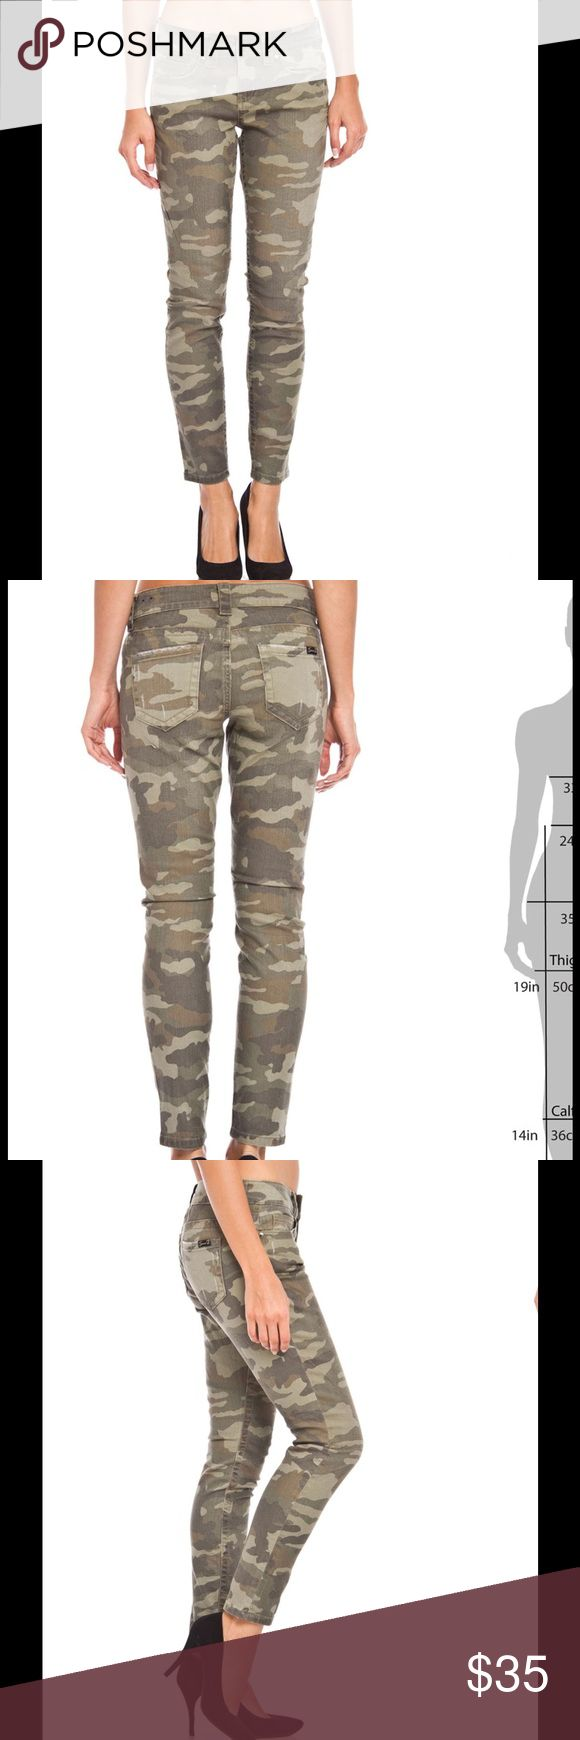 "Seven7 Camouflage skinny jeans 98% cotton 2% spandex these skinny jeans are shades of green and brown 28"" inseam 5 pockets Seven7 Jeans Skinny"